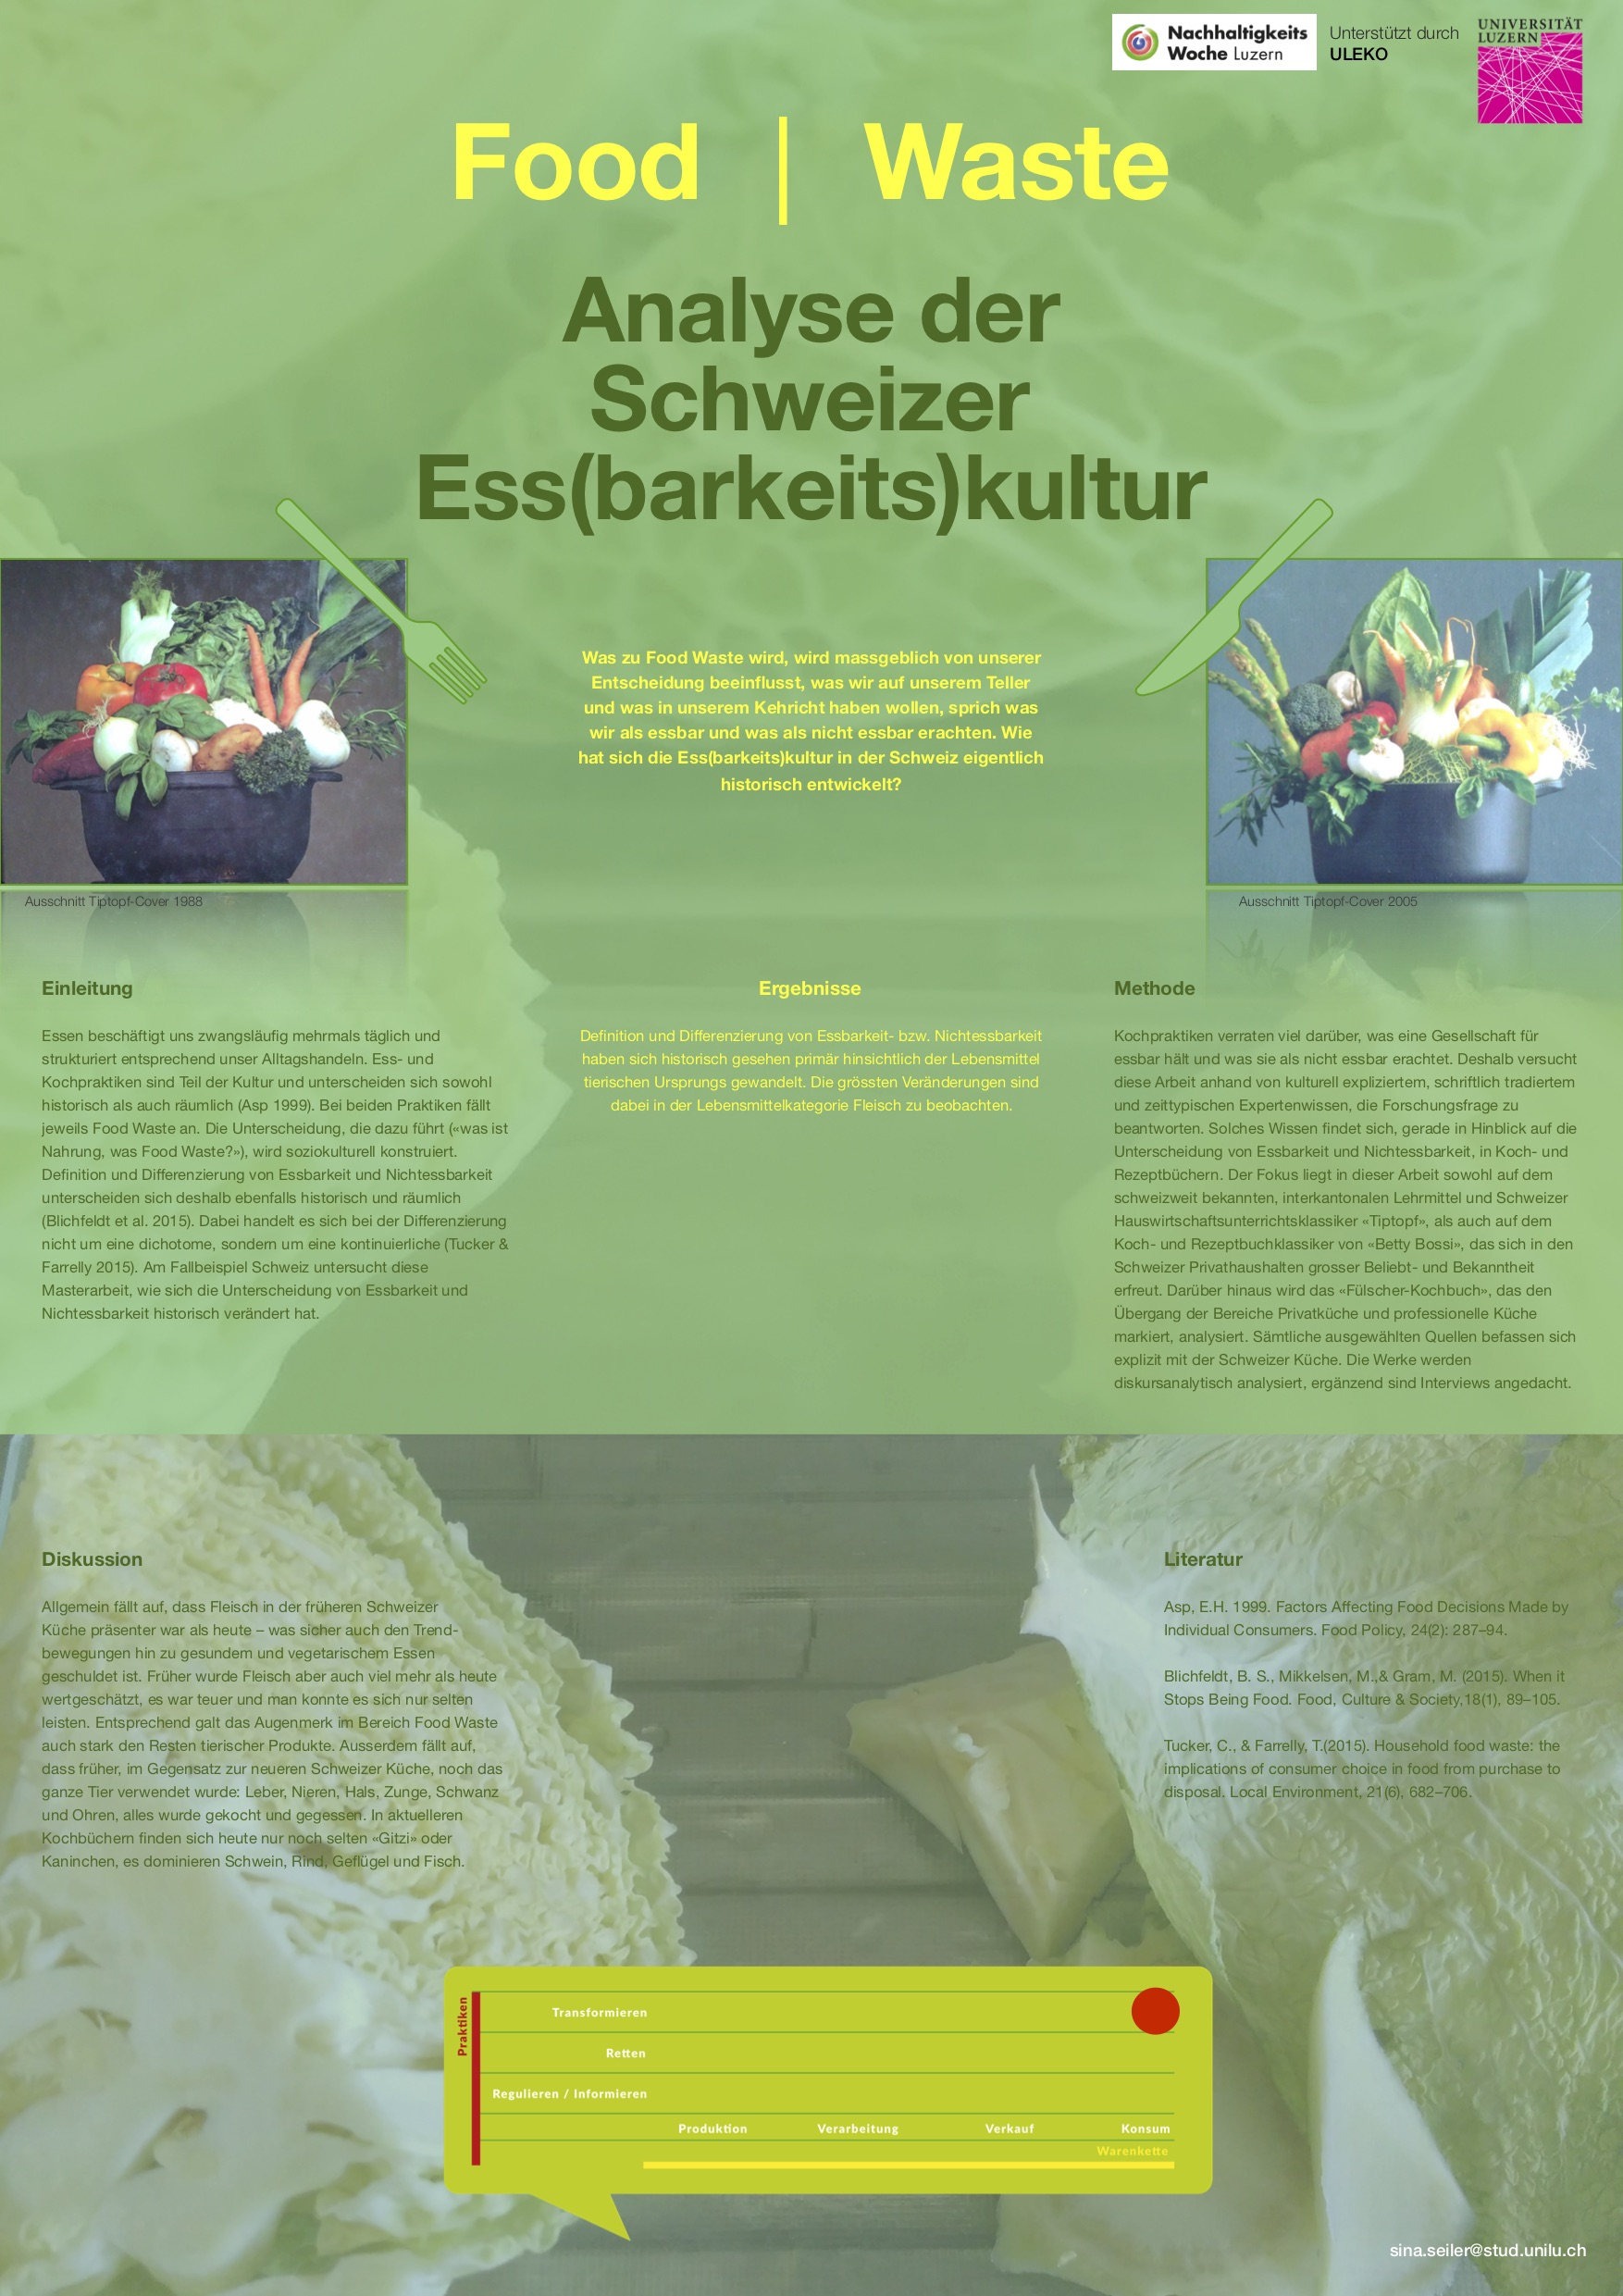 4Seiler_ Food Waste - Analyse der Schwei